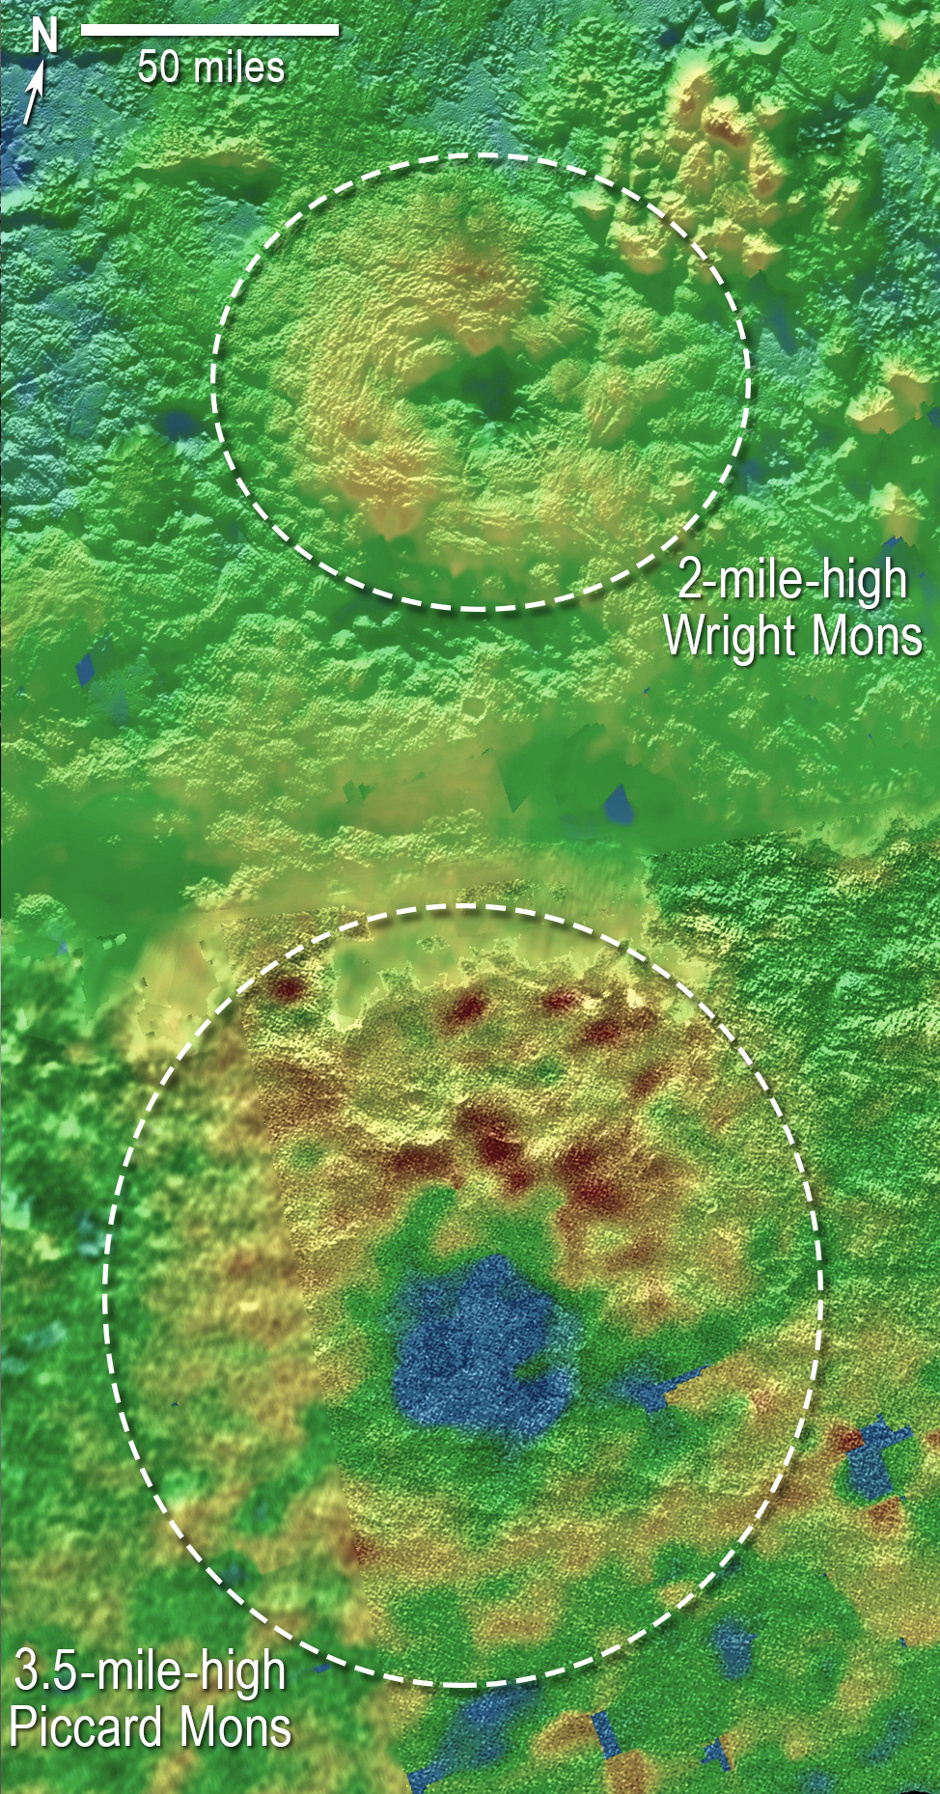 Scientists using New Horizons images of Pluto's surface to make 3-D topographic maps have discovered that two of Pluto's mountains, informally named Wright Mons and Piccard Mons, could possibly be ice volcanoes. The colour is shown to depict changes in elevation, with blue indicating lower terrain and brown showing higher elevation; green terrains are at intermediate heights. Image credit: NASA/Johns Hopkins University Applied Physics Laboratory/Southwest Research Institute.